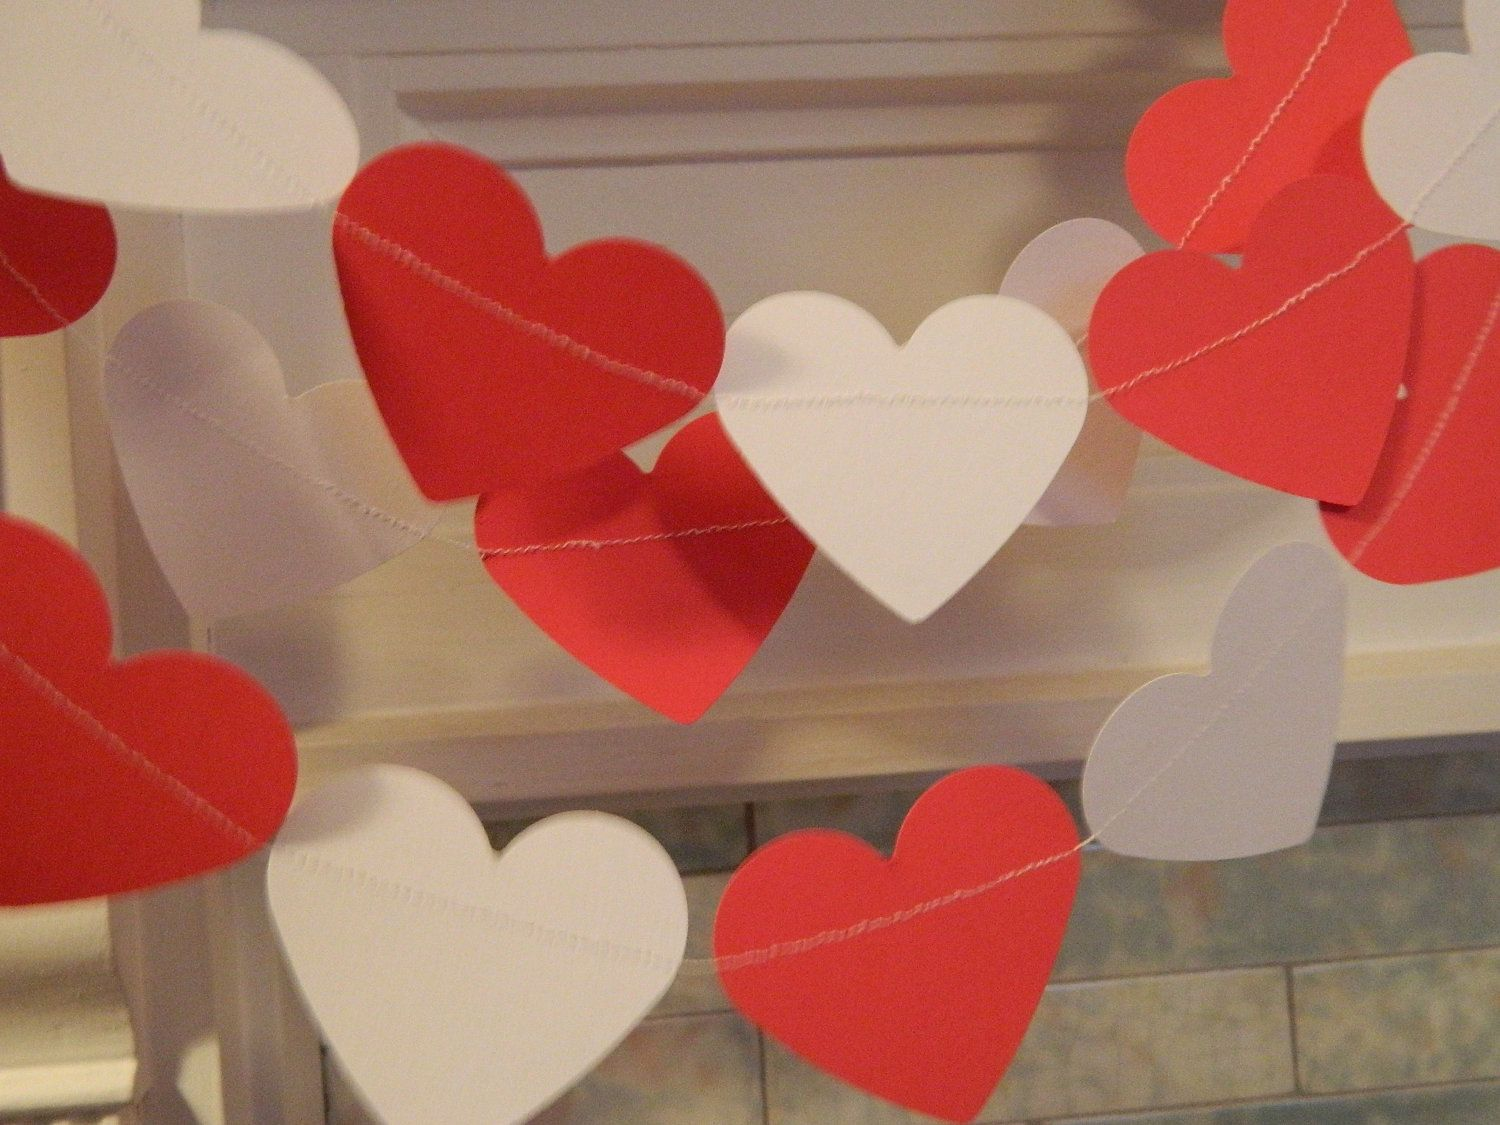 Paper Garland Valentines Day Decor 6ft Red and White Heart Garland Party Decorations Heart Garland Valentines Day Photo Prop. $9.00, via Etsy.